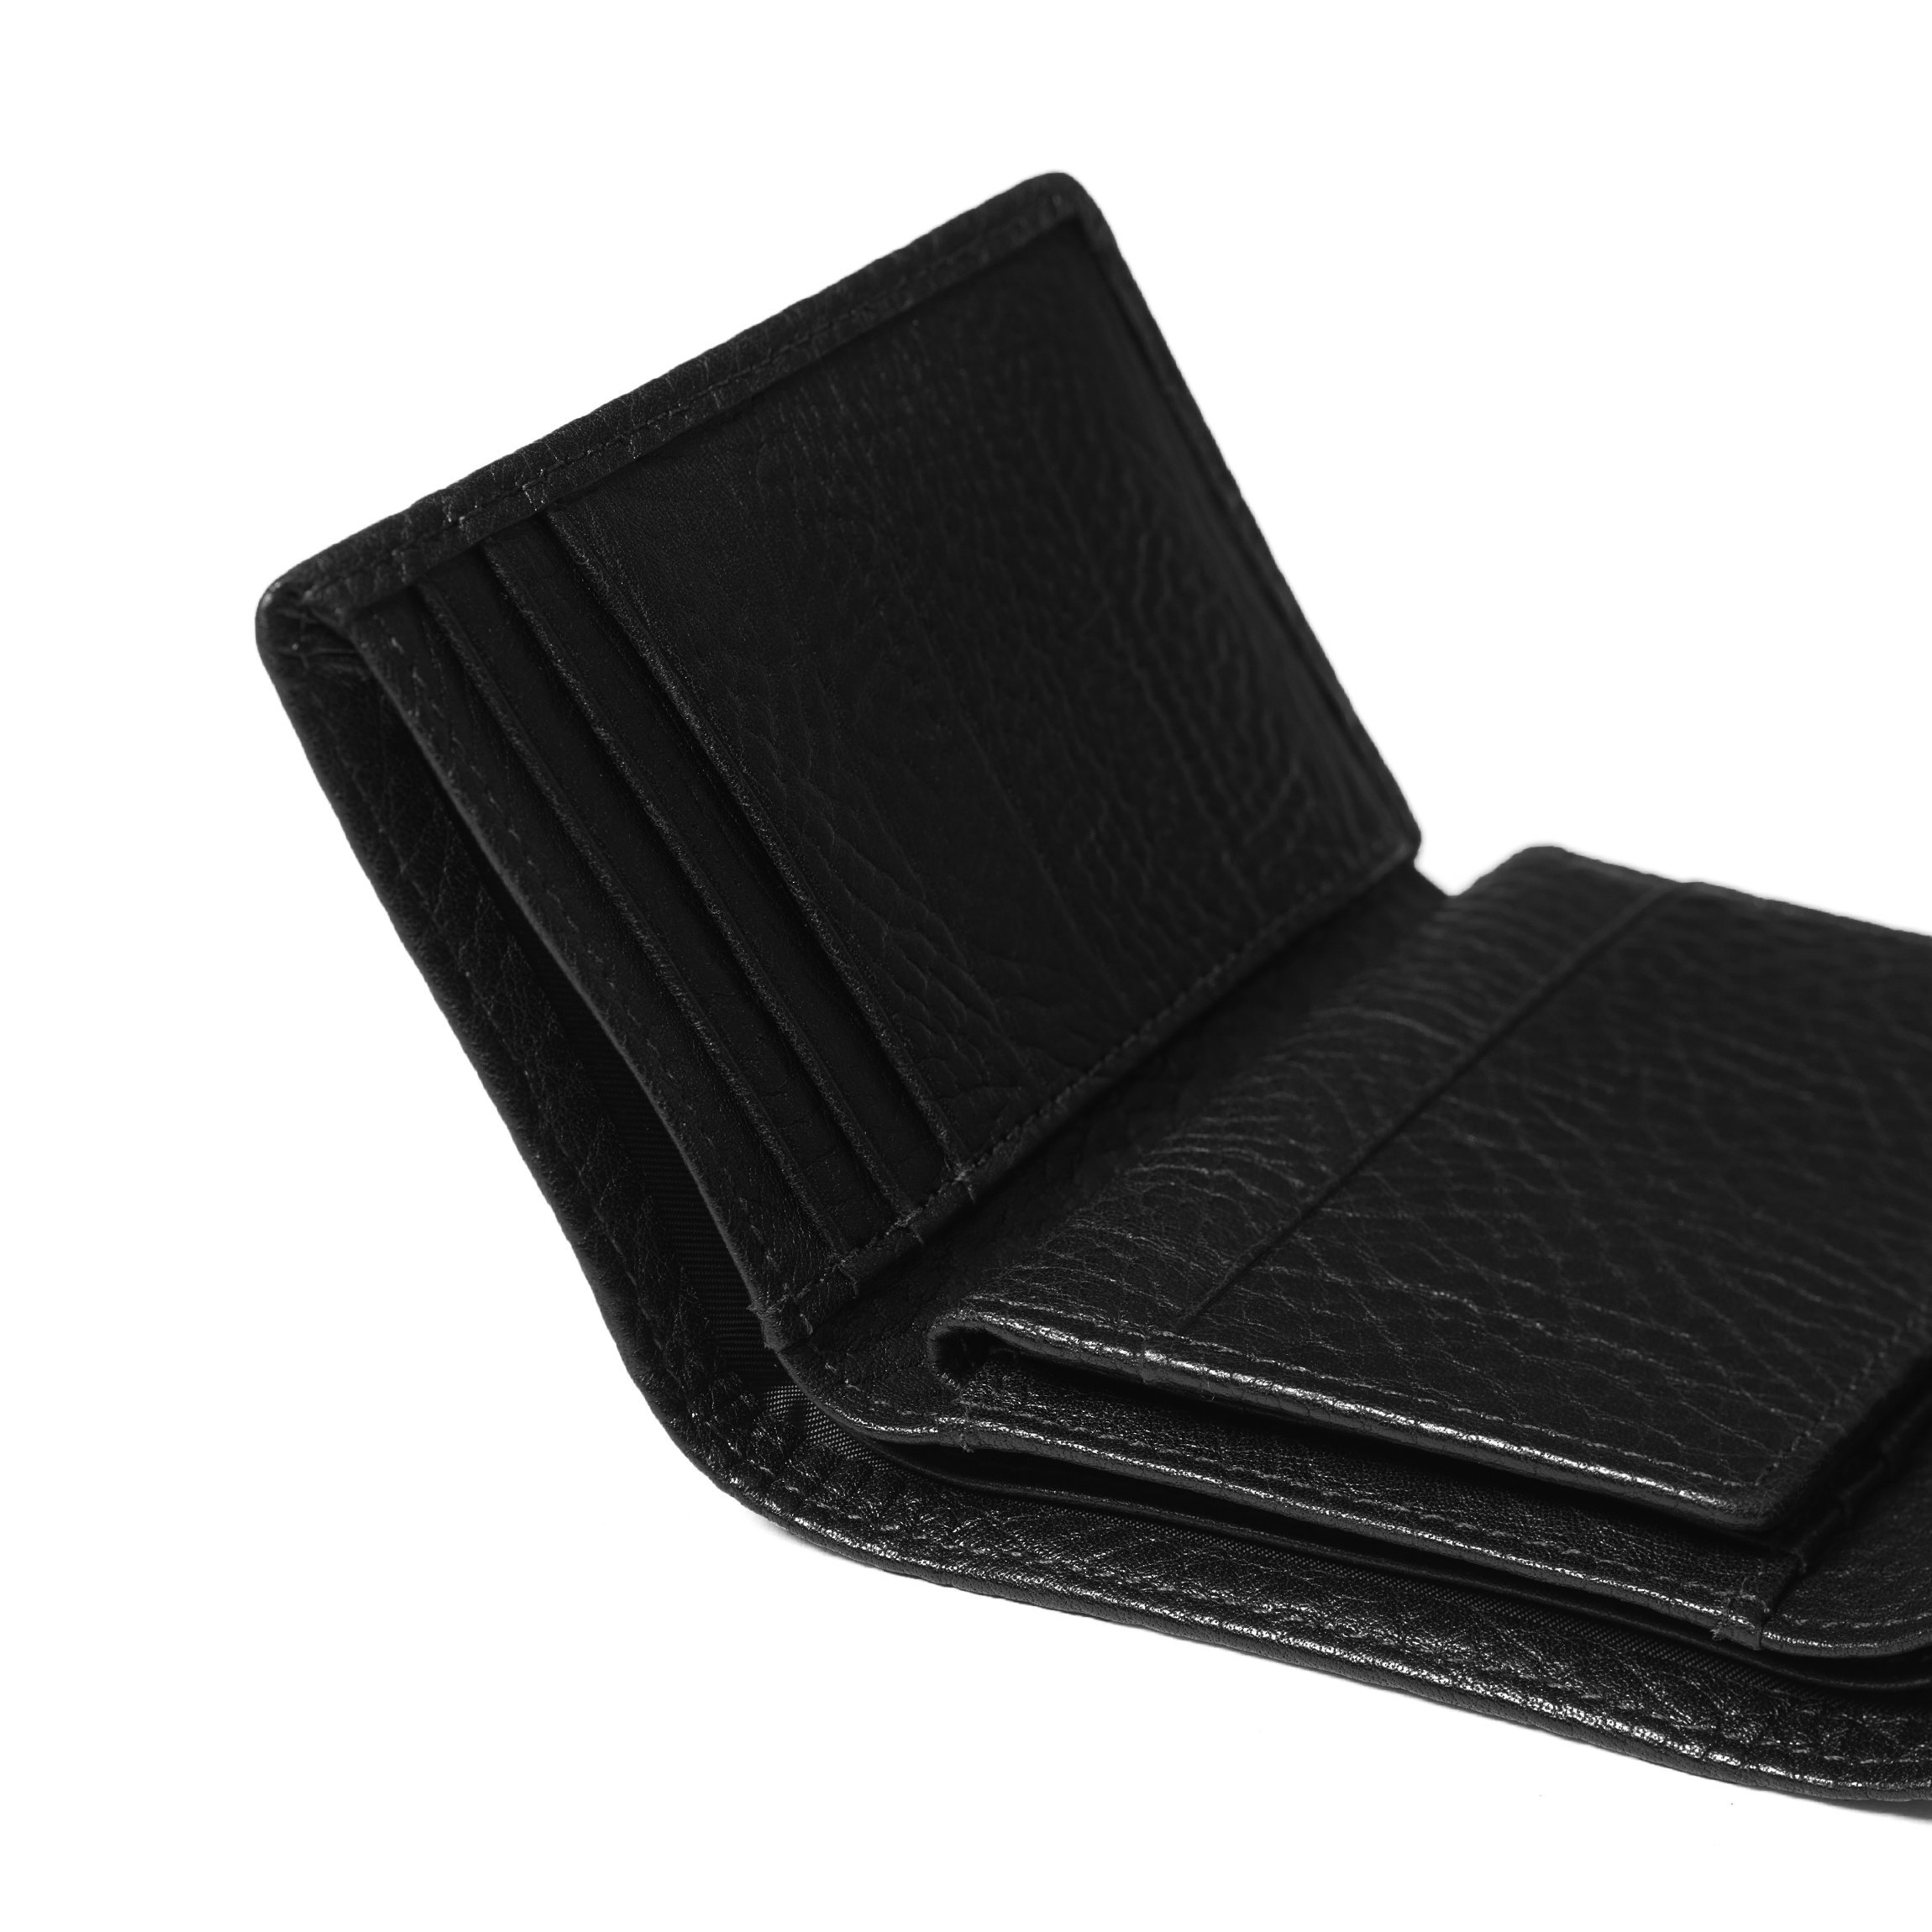 Trifold with Card Wallet - Full Grain Italian Leather Leather - Ebony (black) by Leatherology (Image #4)